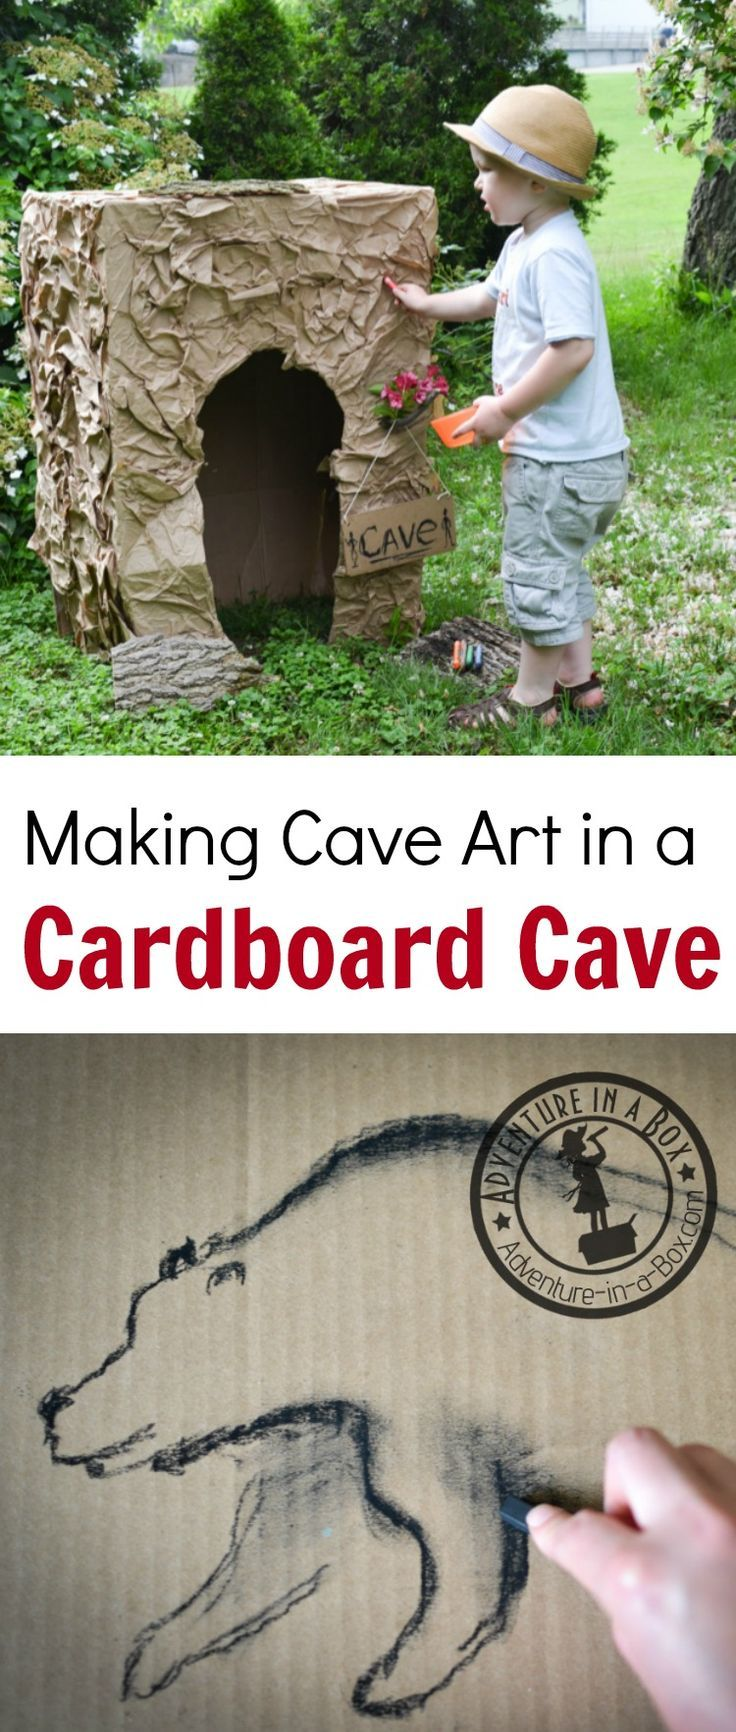 Build a cardboard cave and make cave art. A fun activity for studying history with kids!